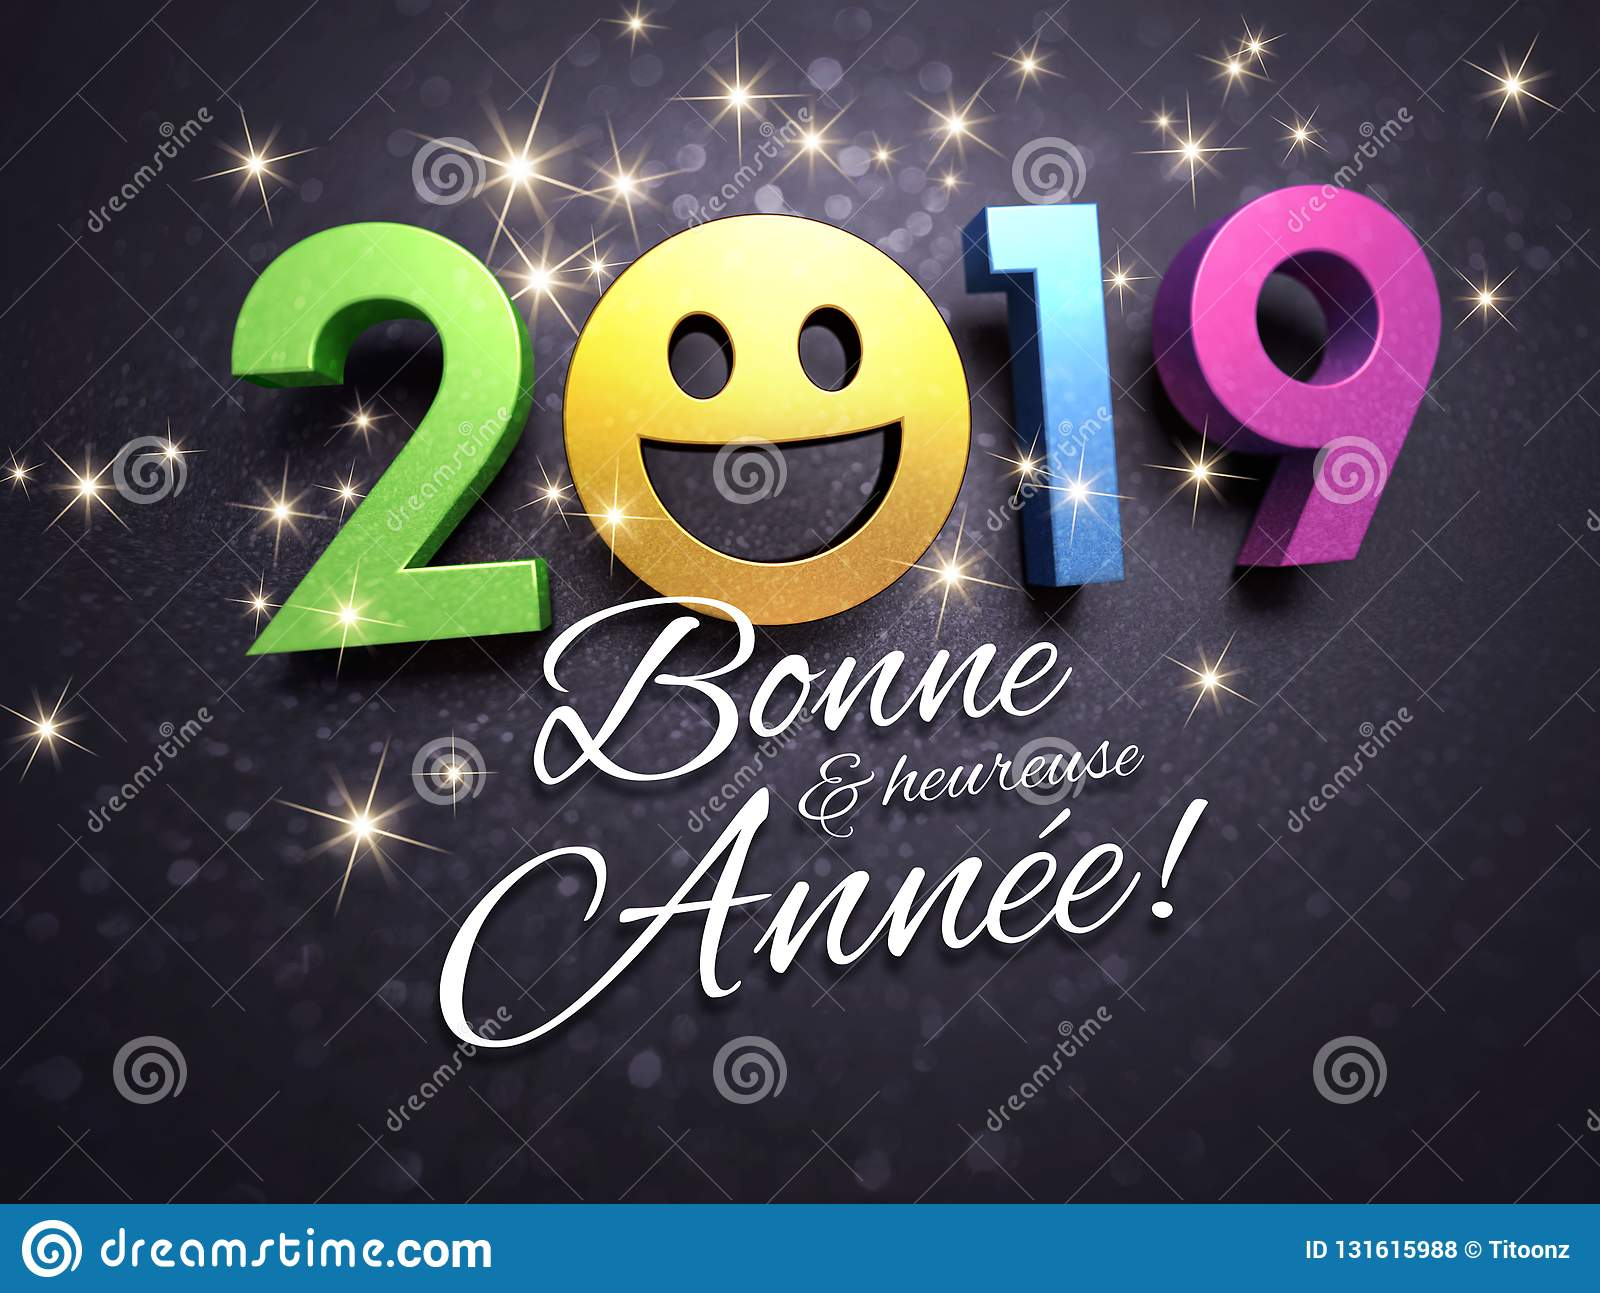 New Year French Greeting Card For Smiling Stock